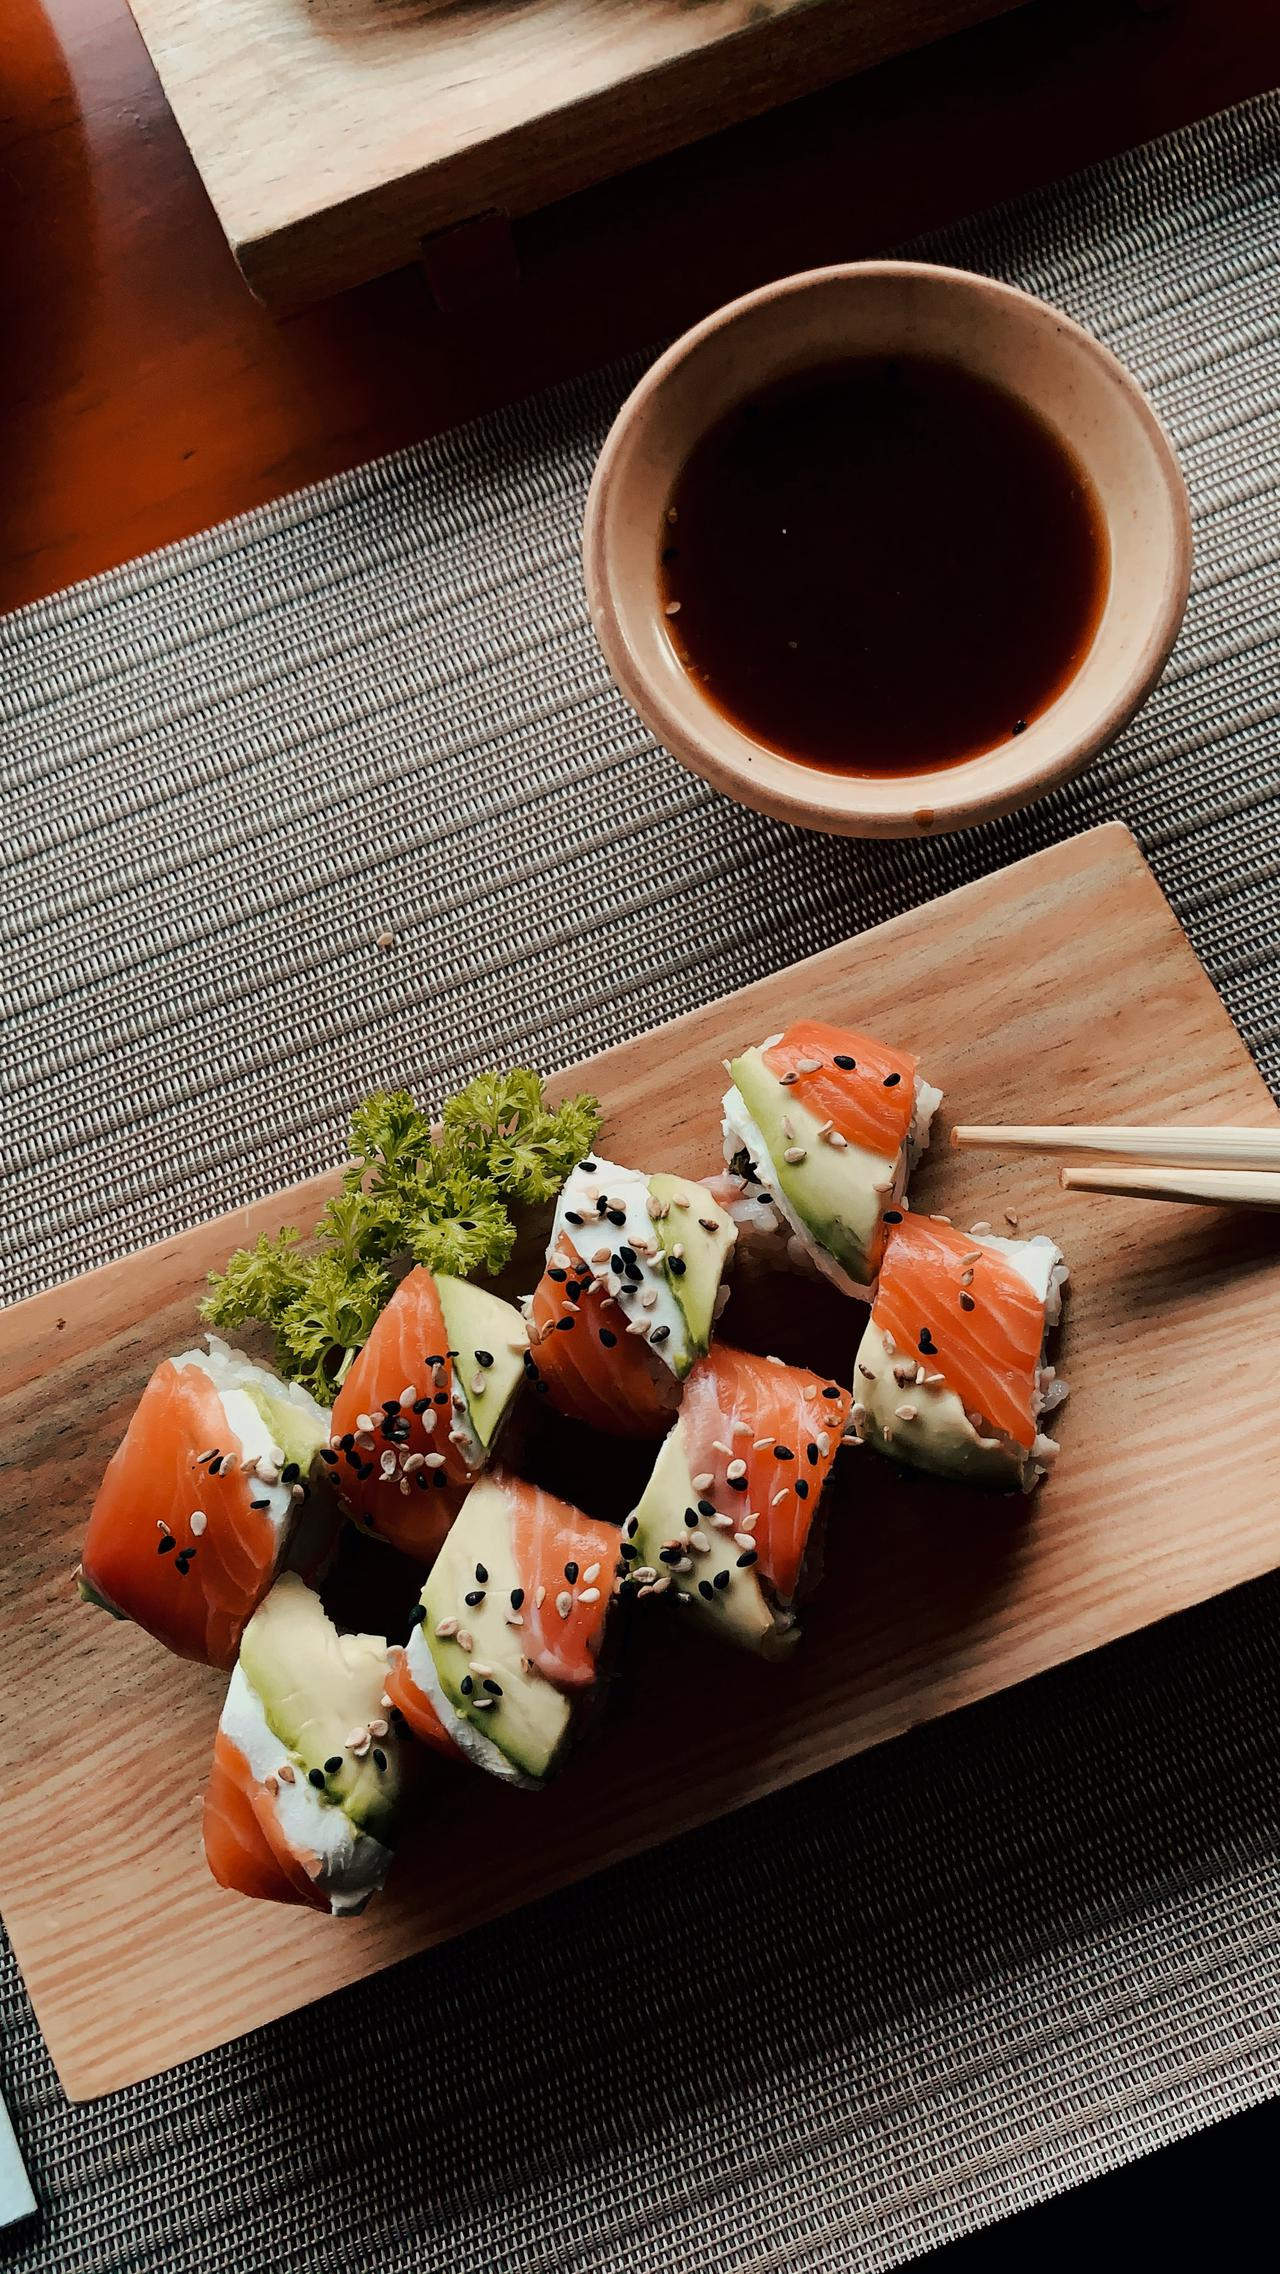 Sushi on a wooden plate with chopsticks resting against it and soy sauce nearby in a dish.